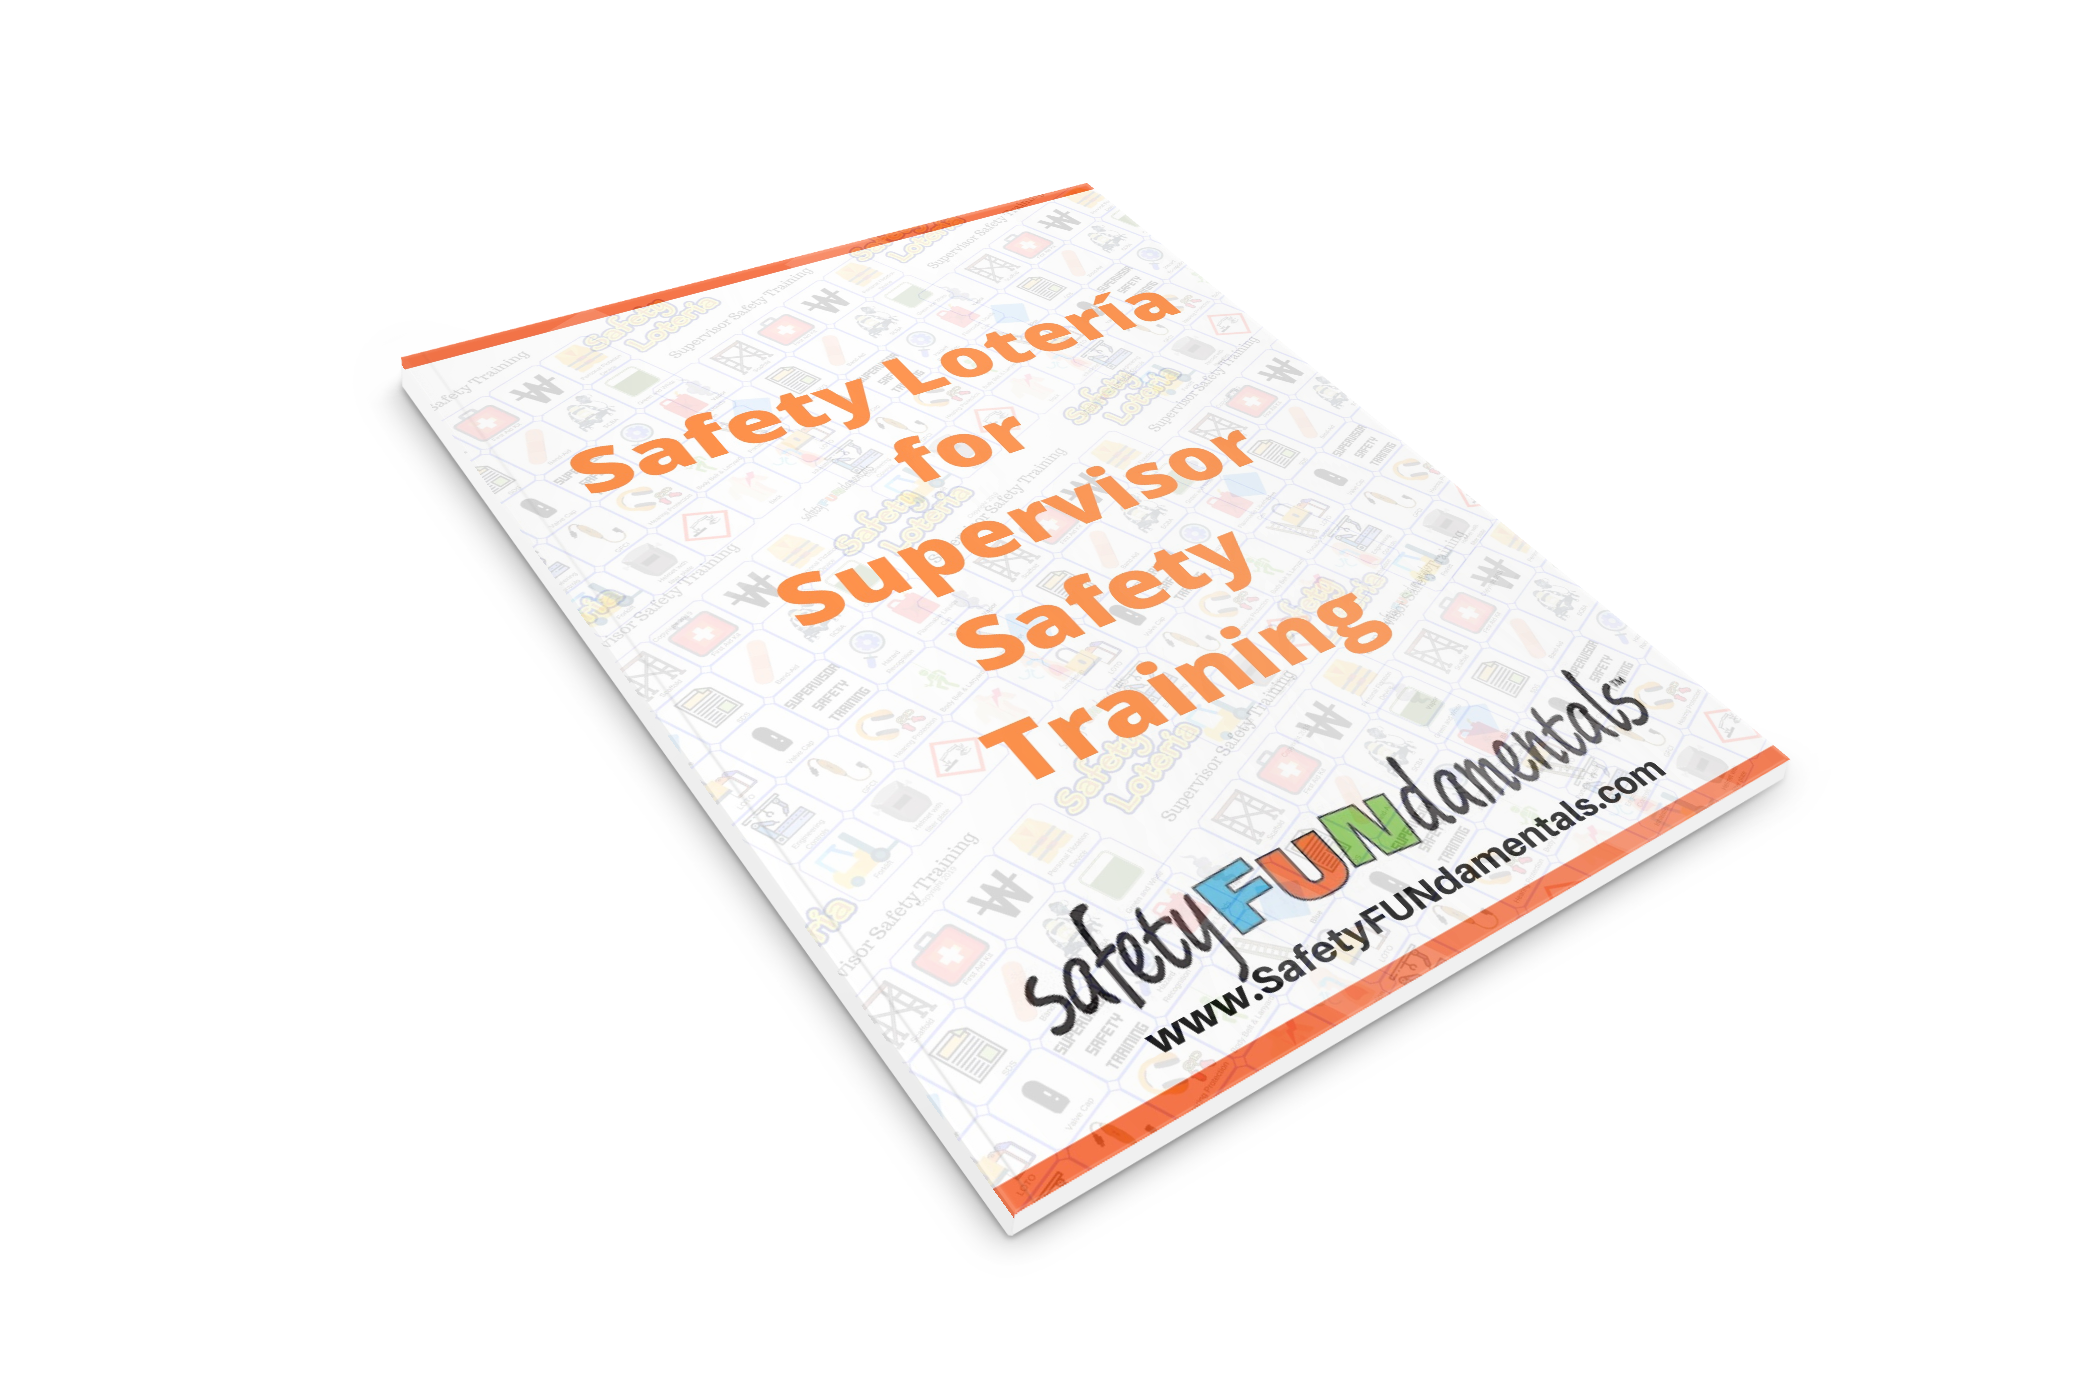 A free safety training game that covers a wide variety of